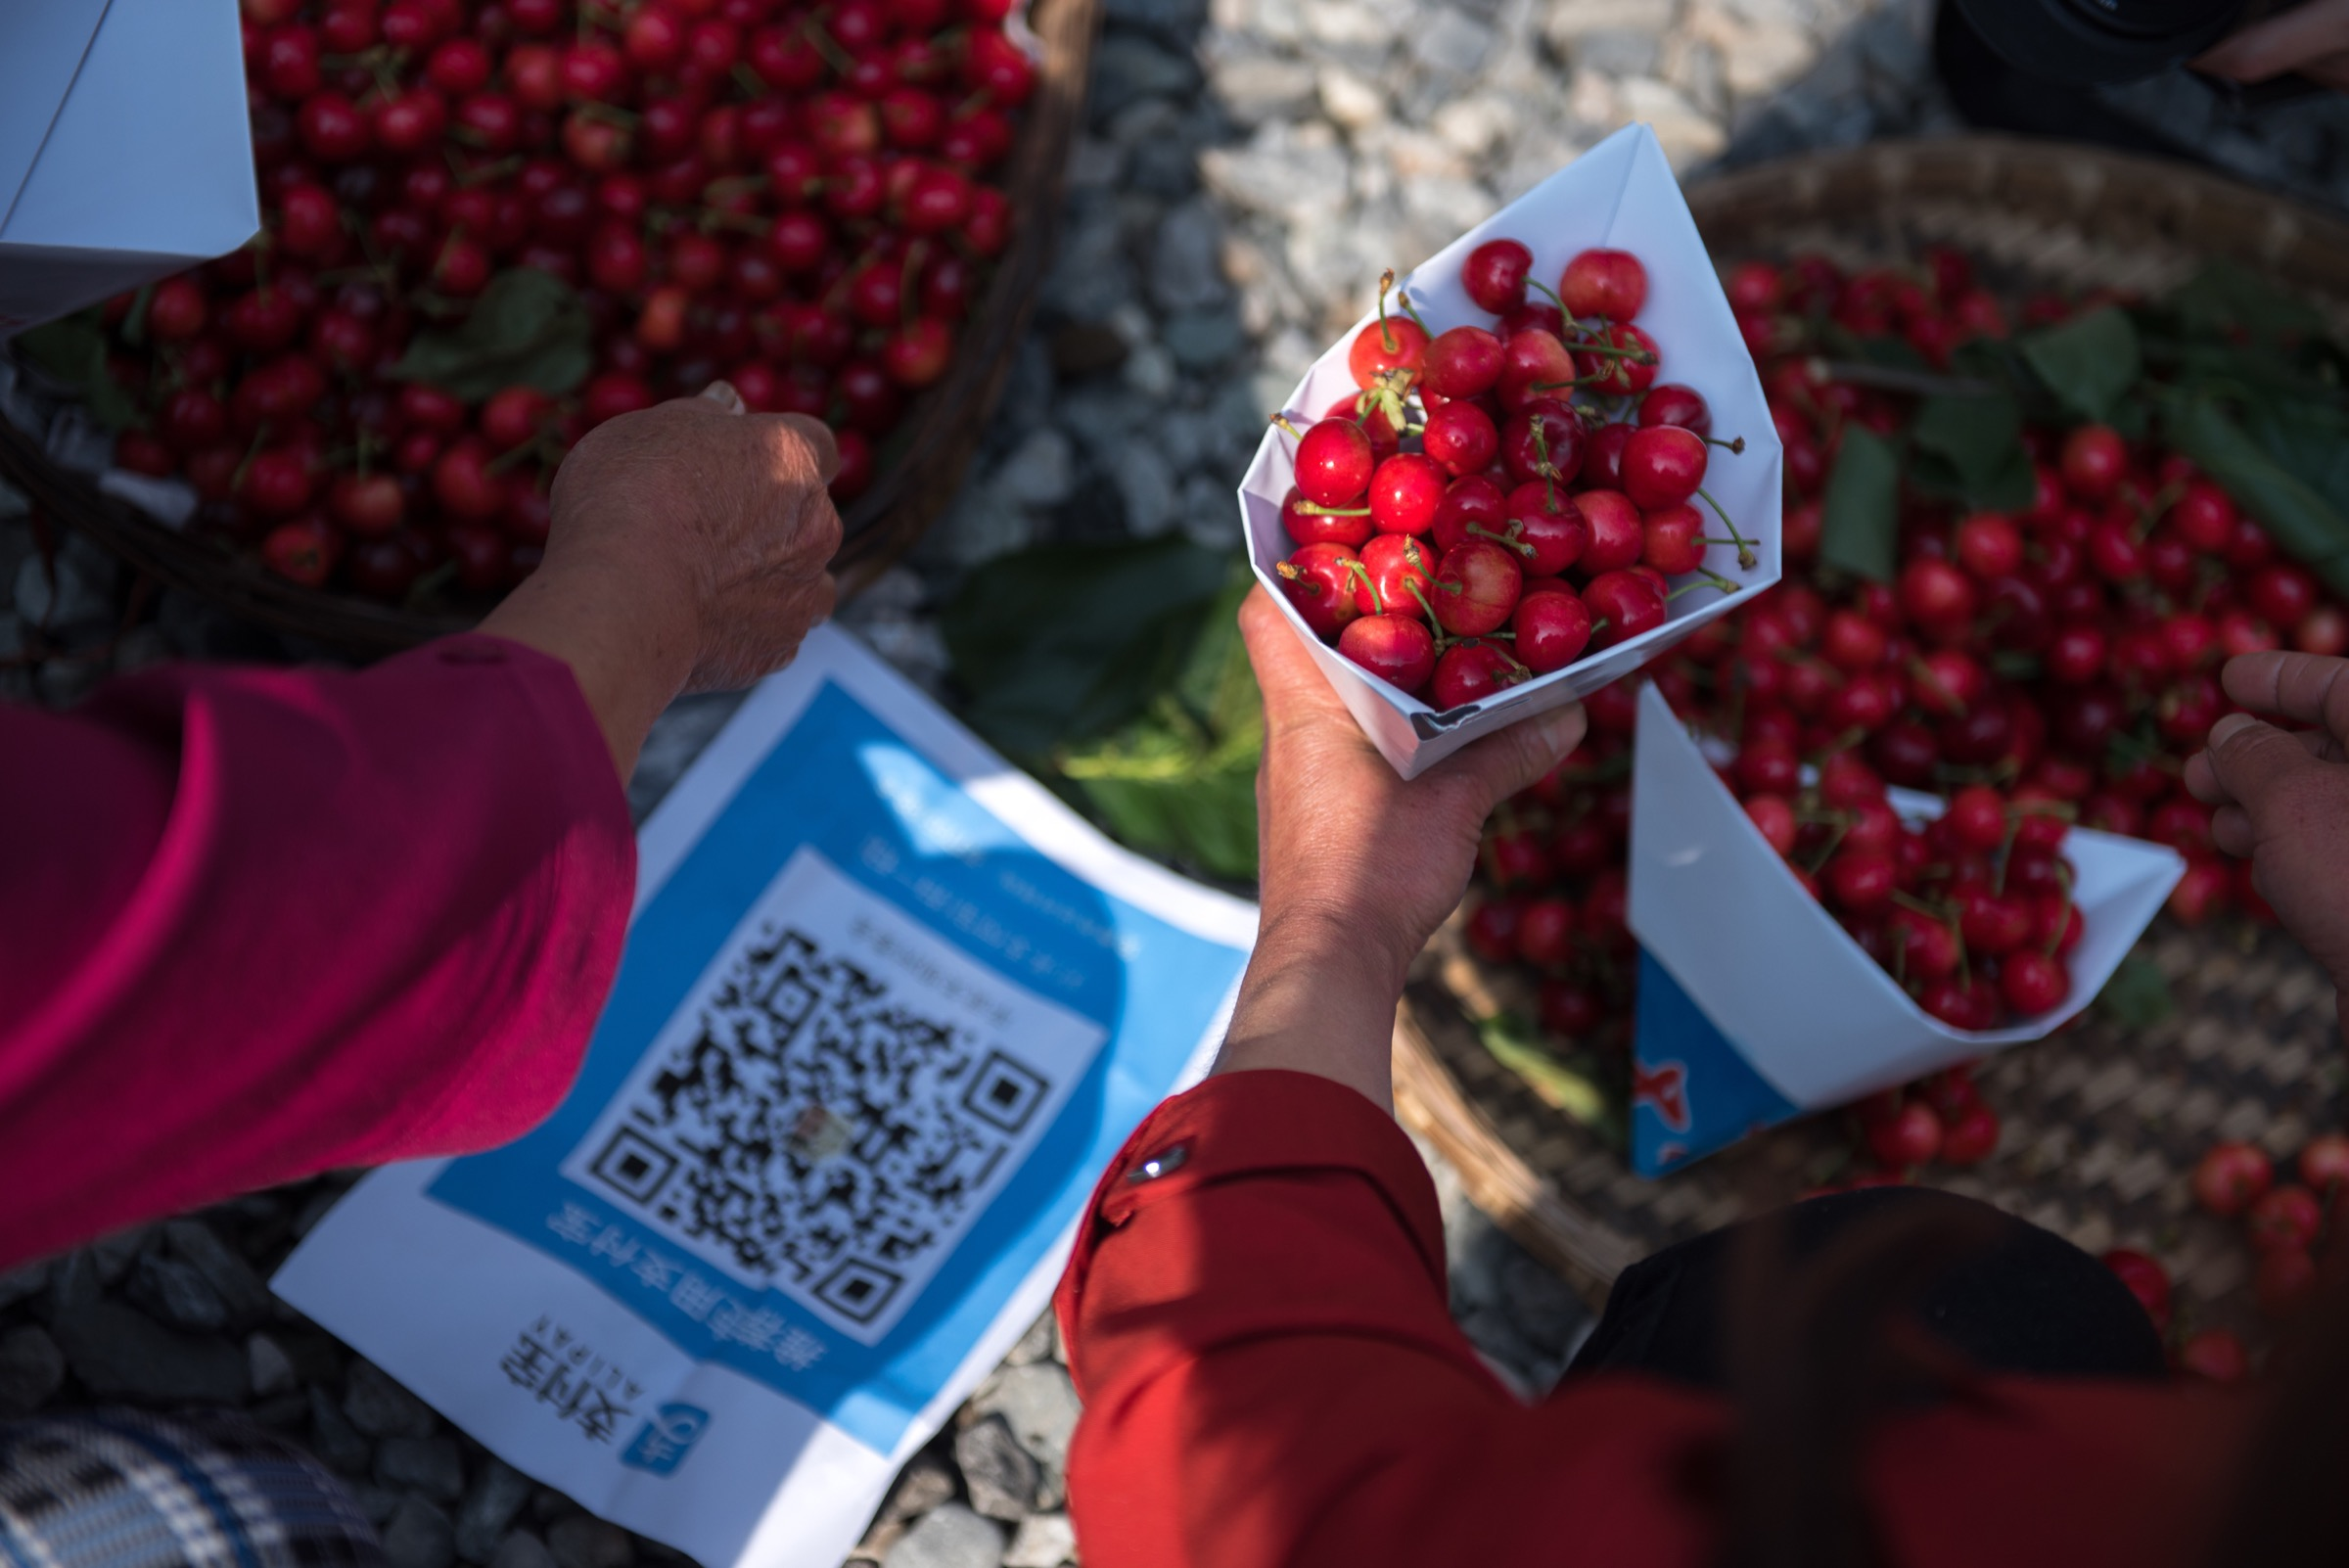 Ripe cherries are sold for 2 yuan duringa media event held by Ant Financial's forest program in the newly built pavilion at Guanba. Buyers can pay for the produce with their cell phones by scanning QR codes. Photograph by Kyle Obermann